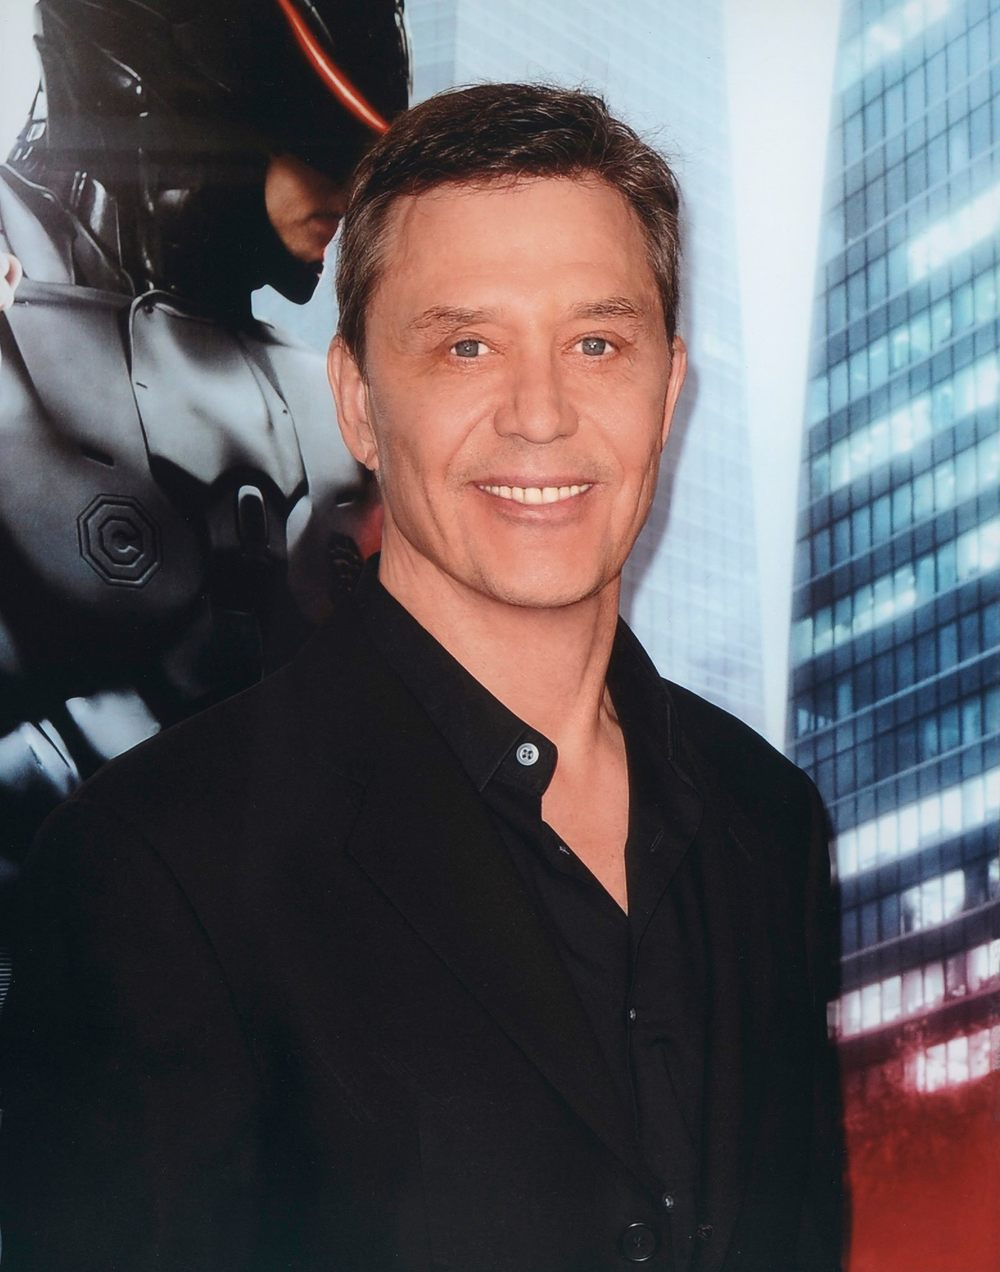 Richard Eden at the Robocop Premiere (2014)